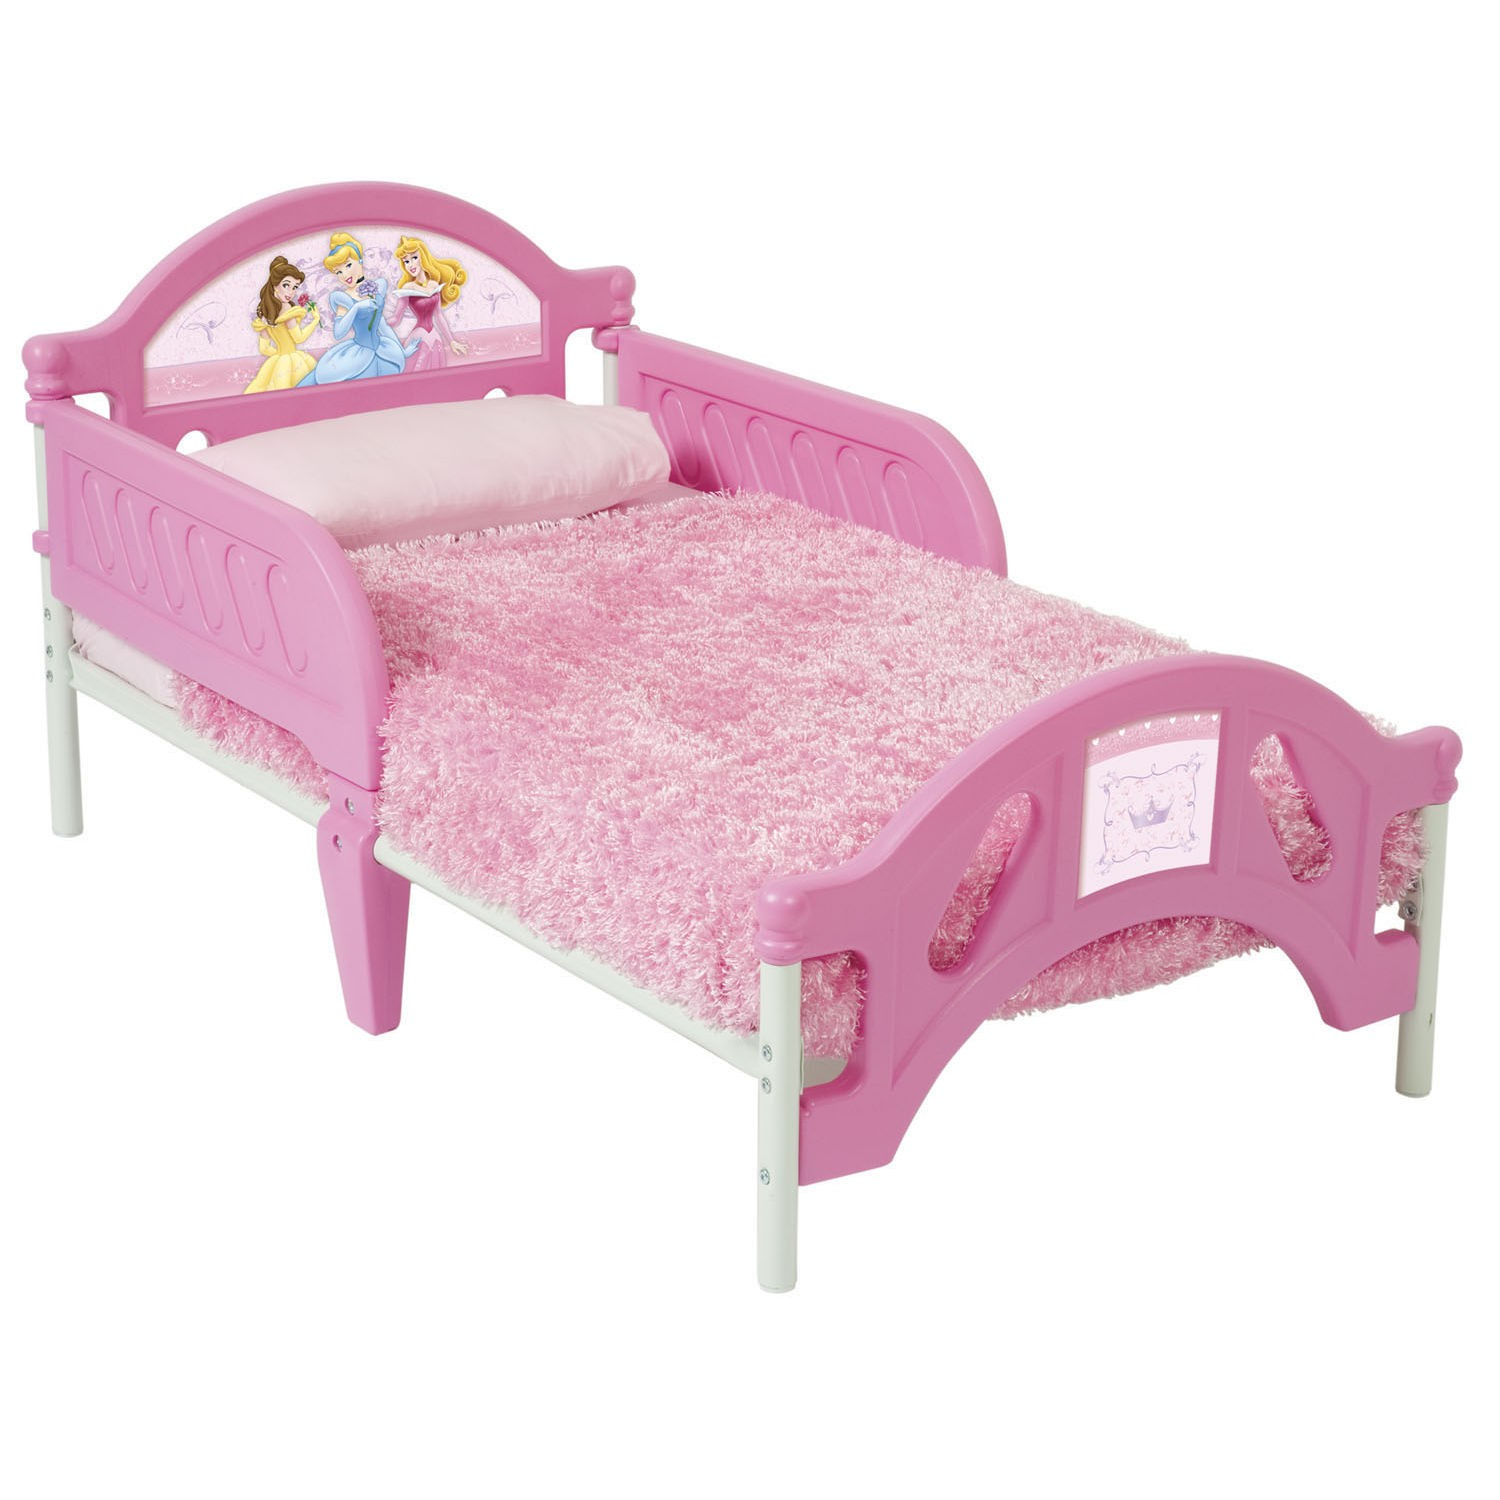 Enhance the Comfort of Your Child with Delta cars toddler ...